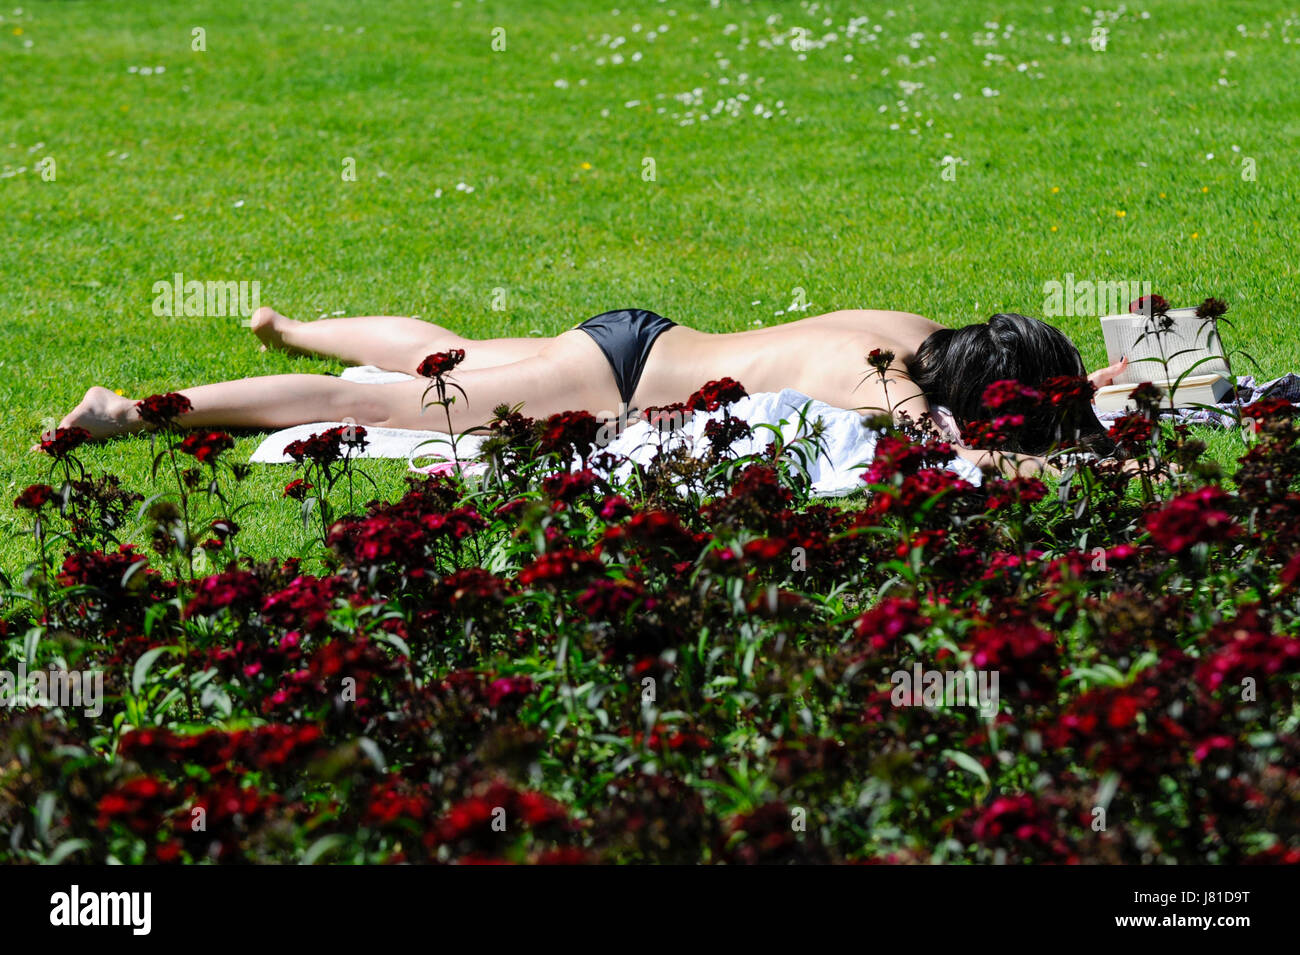 London, UK. 26th May, 2017. A sunbather in Whitehall Garden enjoys the hot weather and bright sunshine. Credit: - Stock Image